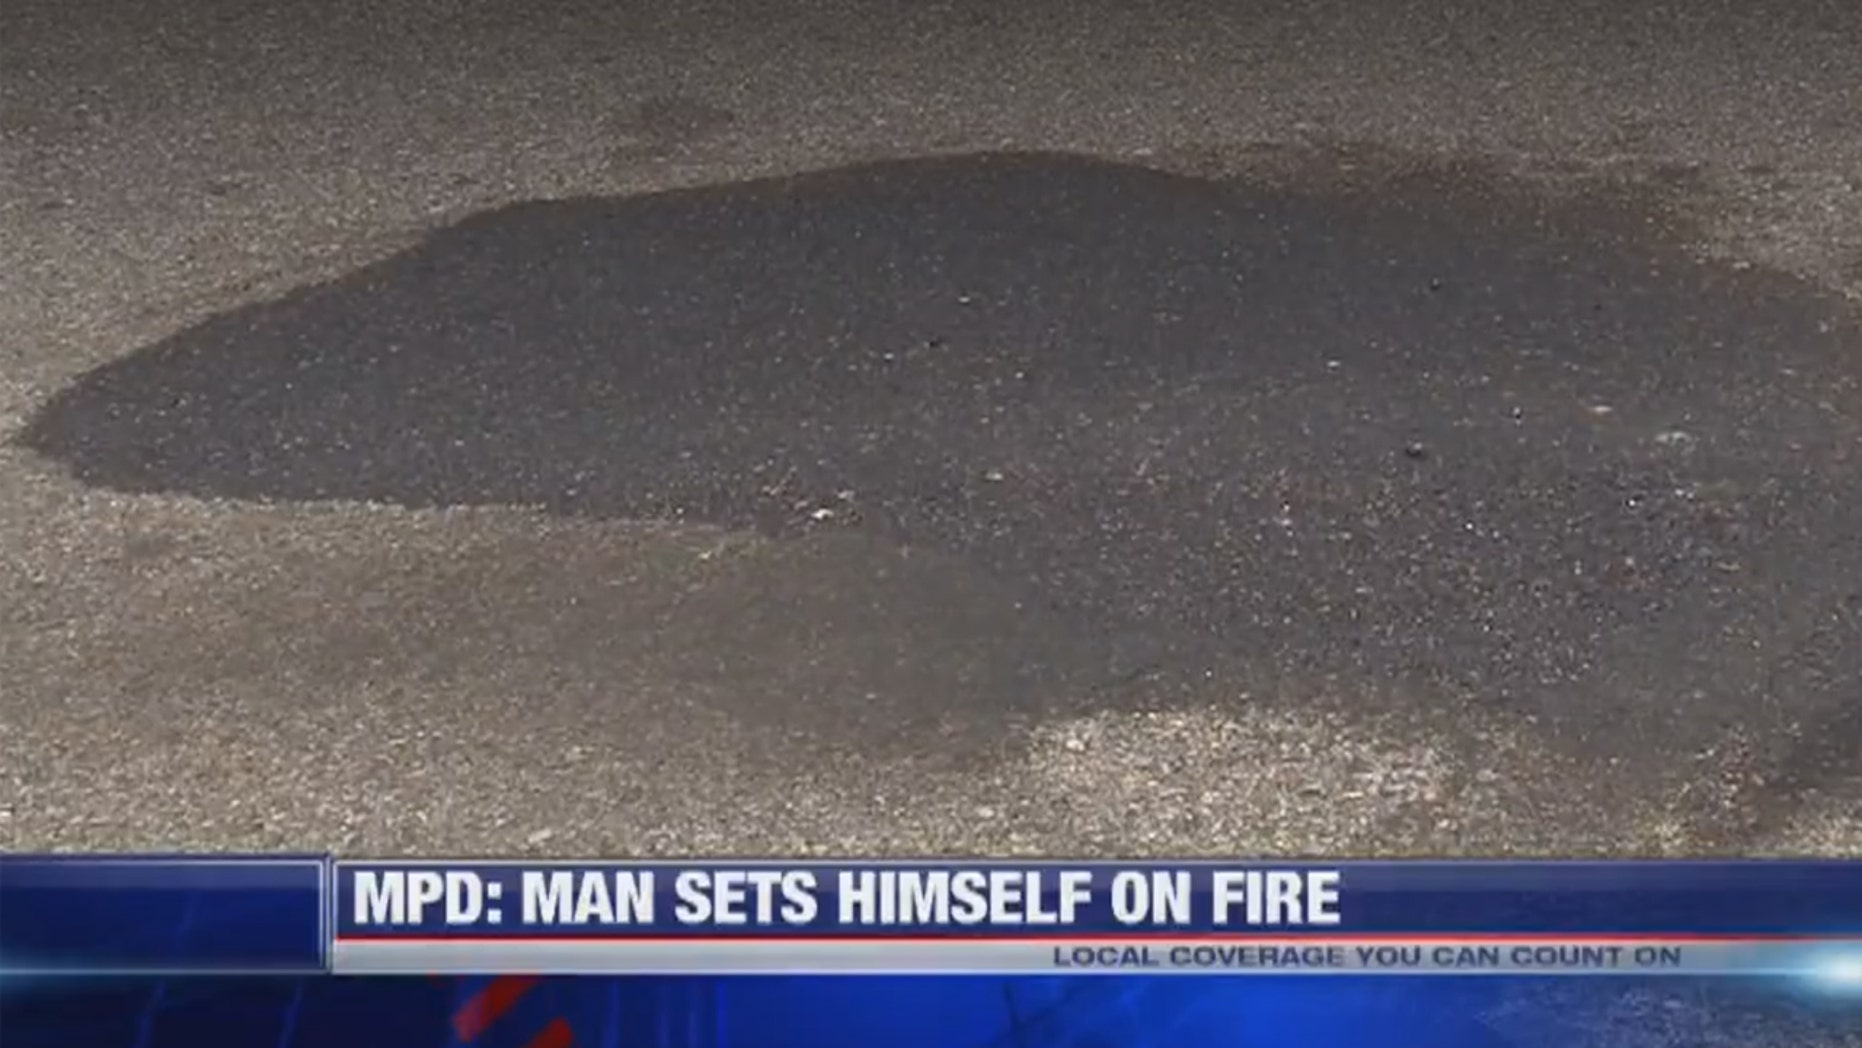 man on fire story